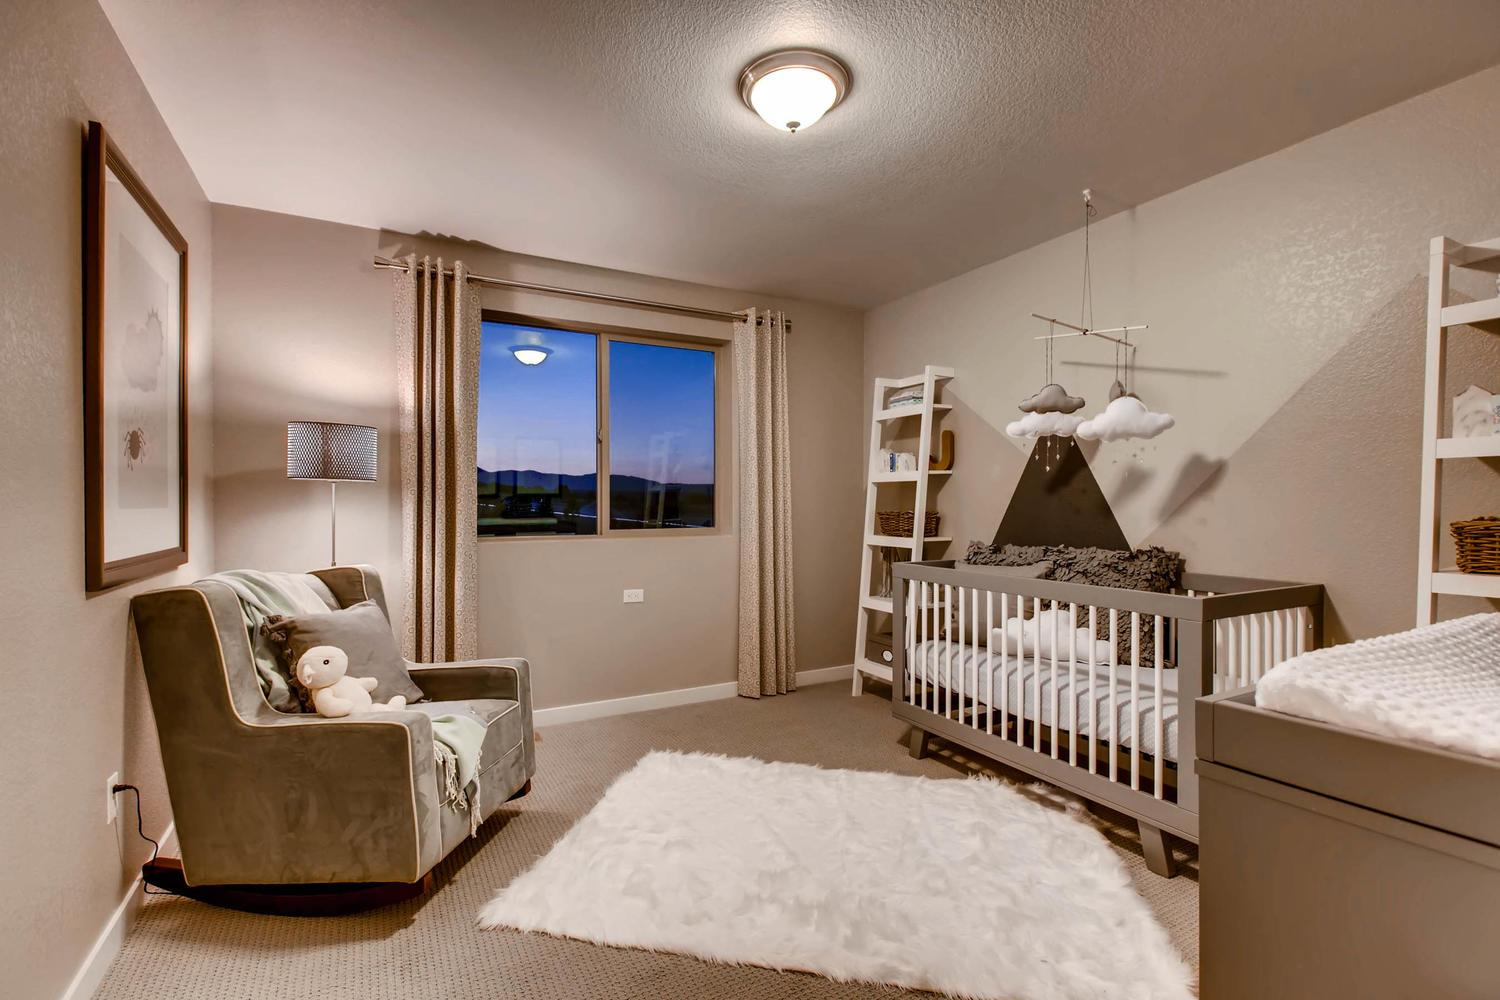 Bedroom featured in the Somerset By Classic Homes in Colorado Springs, CO